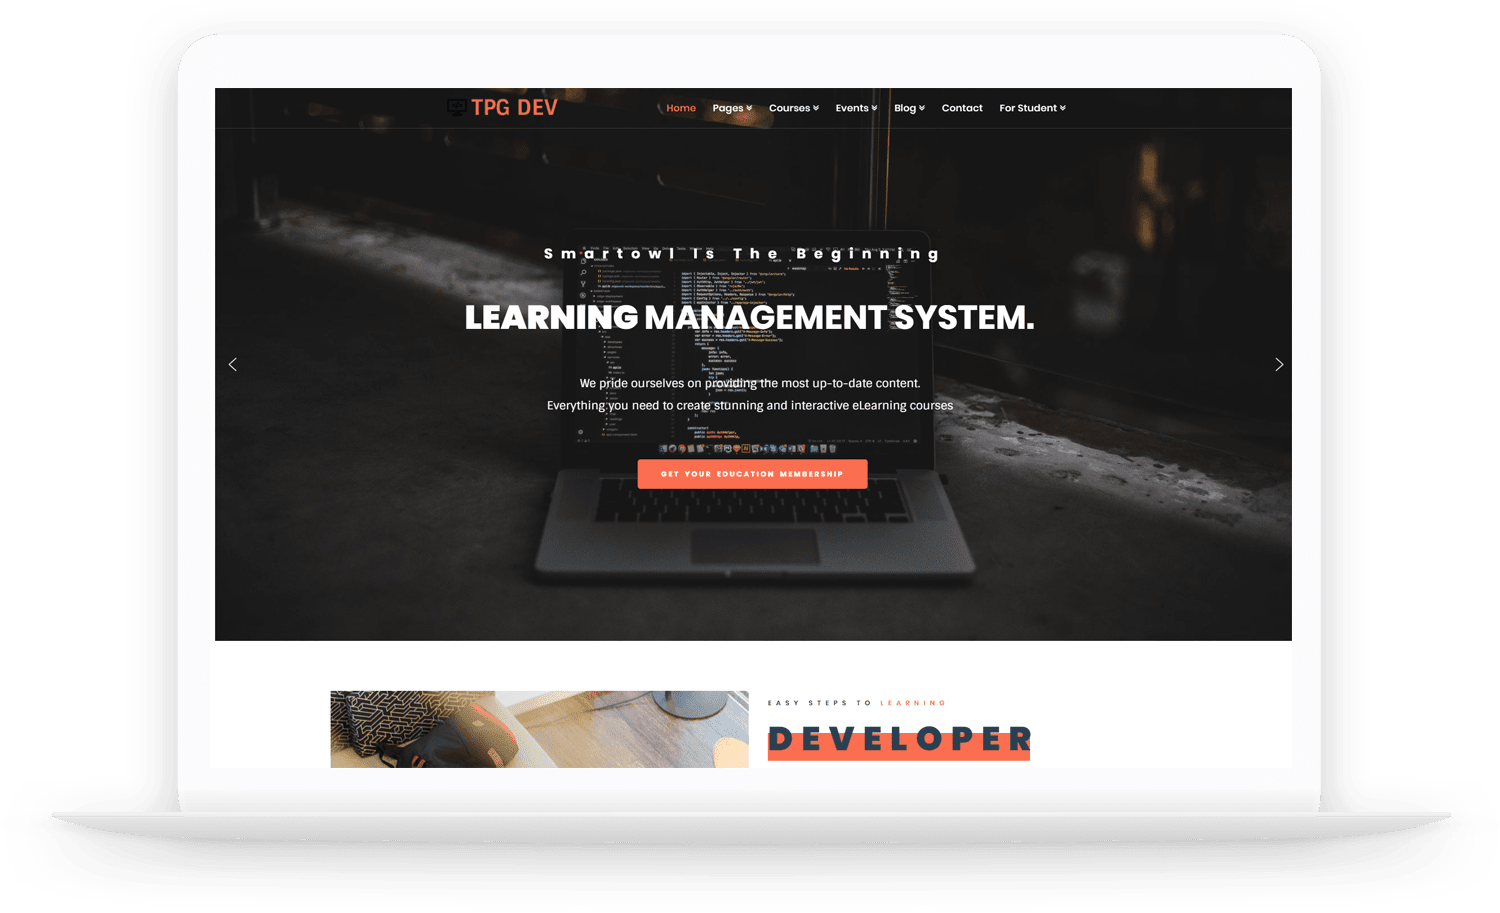 tpg-dev-free-responsive-wordpress-theme